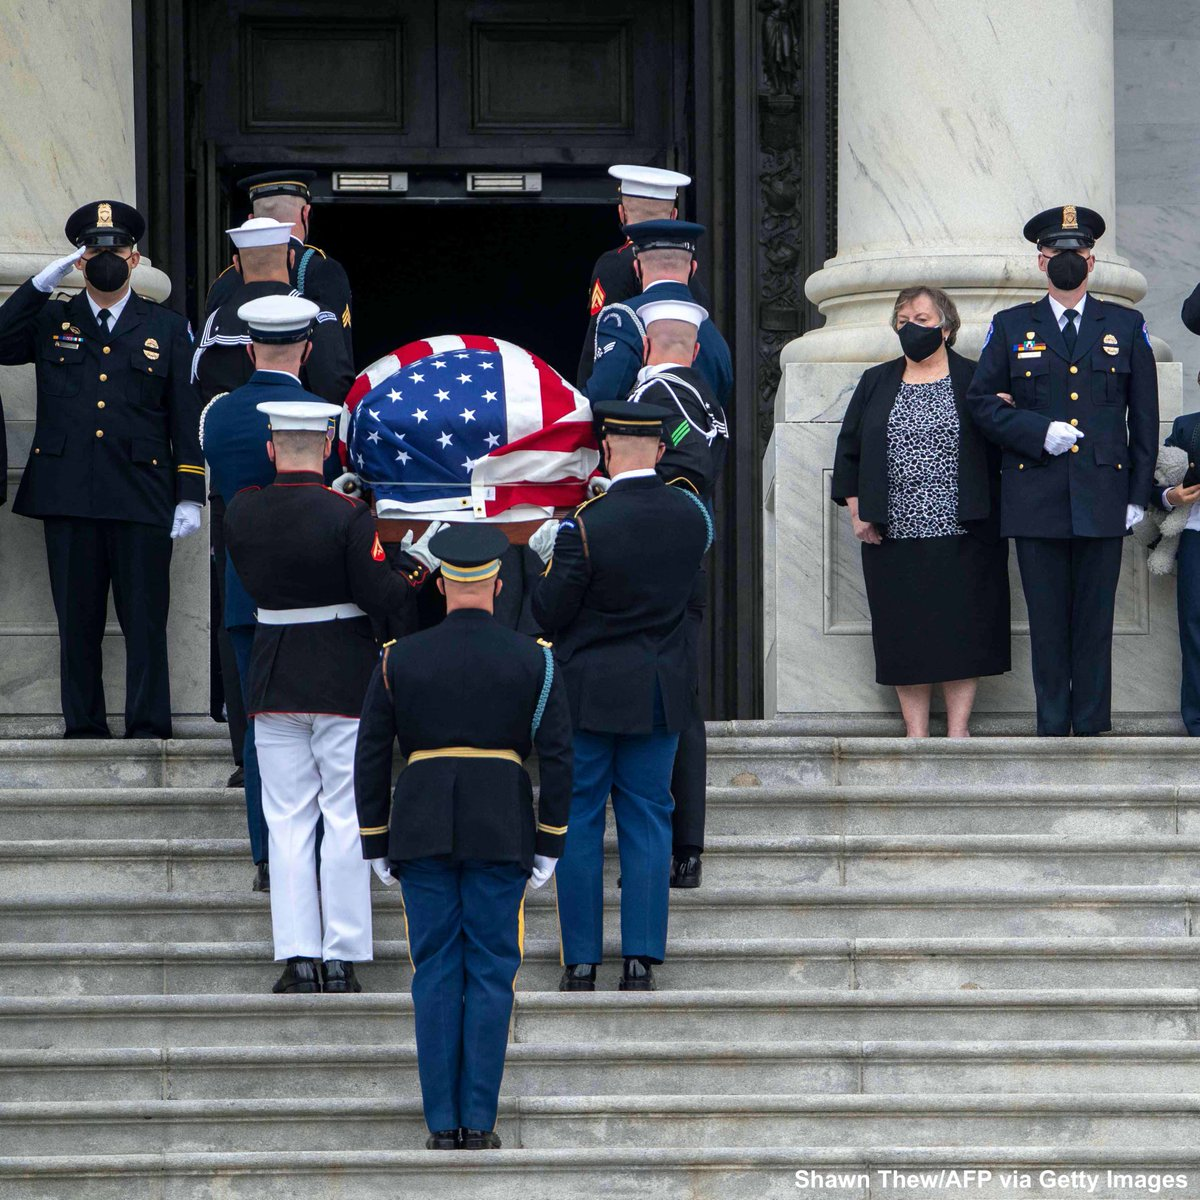 """Today, I paid my respects to @CapitolPolice Officer William """"Billy"""" Evans.   Ofc. Evans was a loving father who gave his life to defend the Capitol last week. We are humbled by his sacrifice, and grateful for his 18 years of selfless service."""